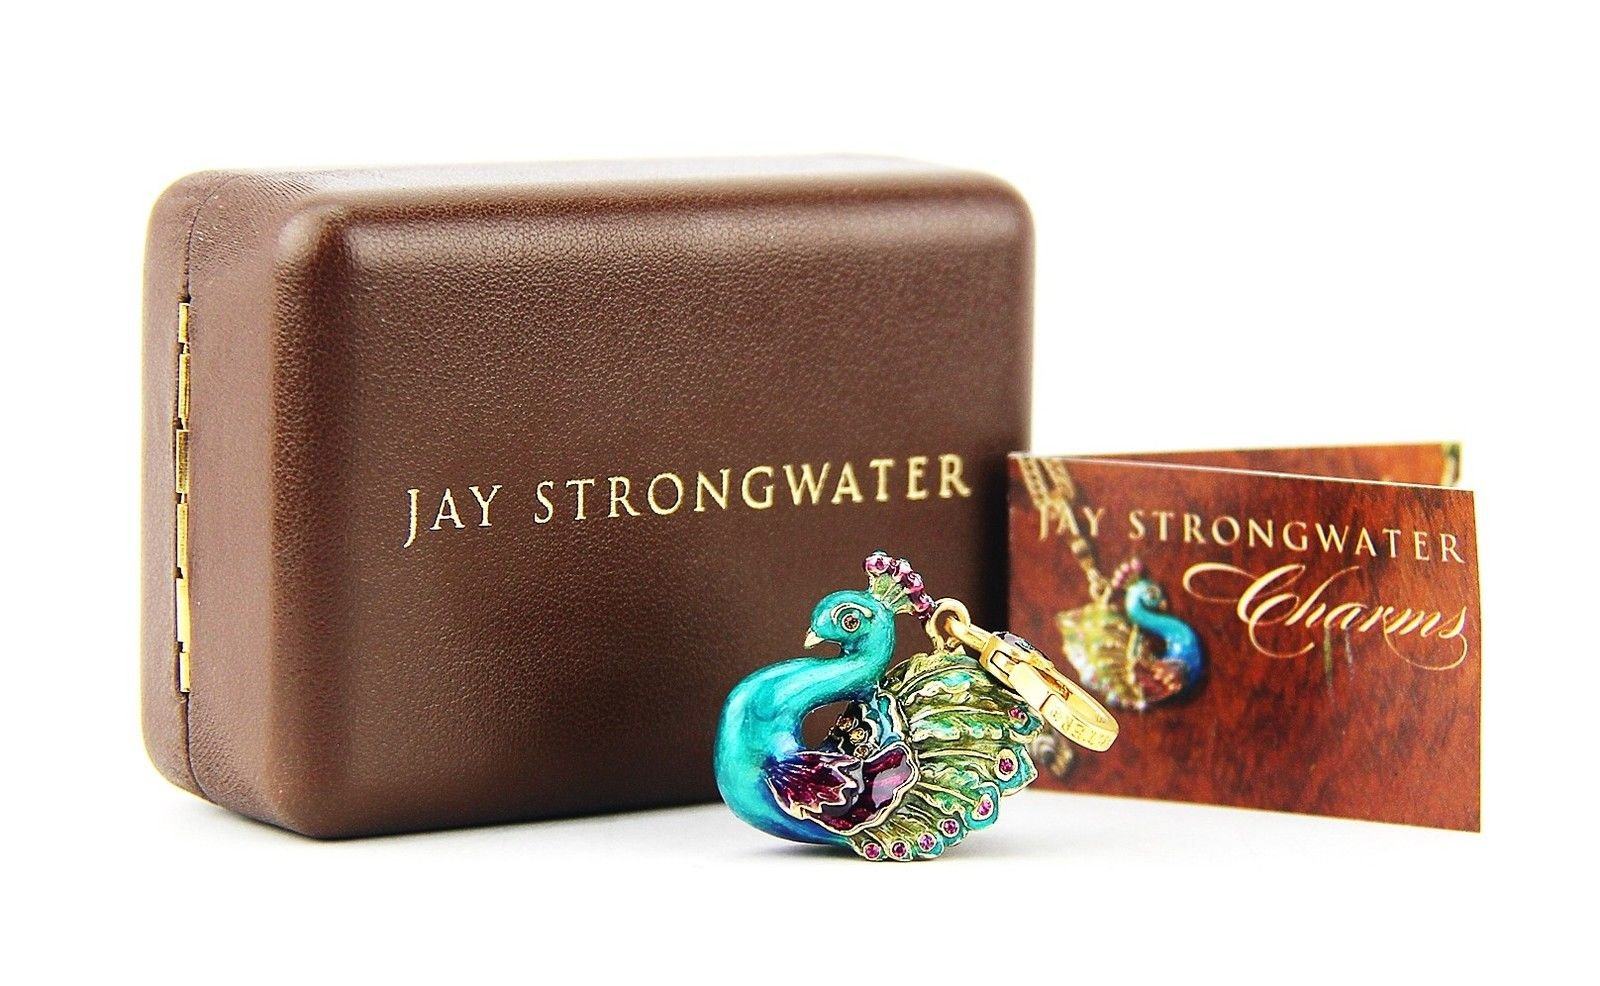 Jay Strongwater Lillian Peacock Charm 18k Gold Plated Swarovski Crystals Brand New Box by Unknown (Image #2)